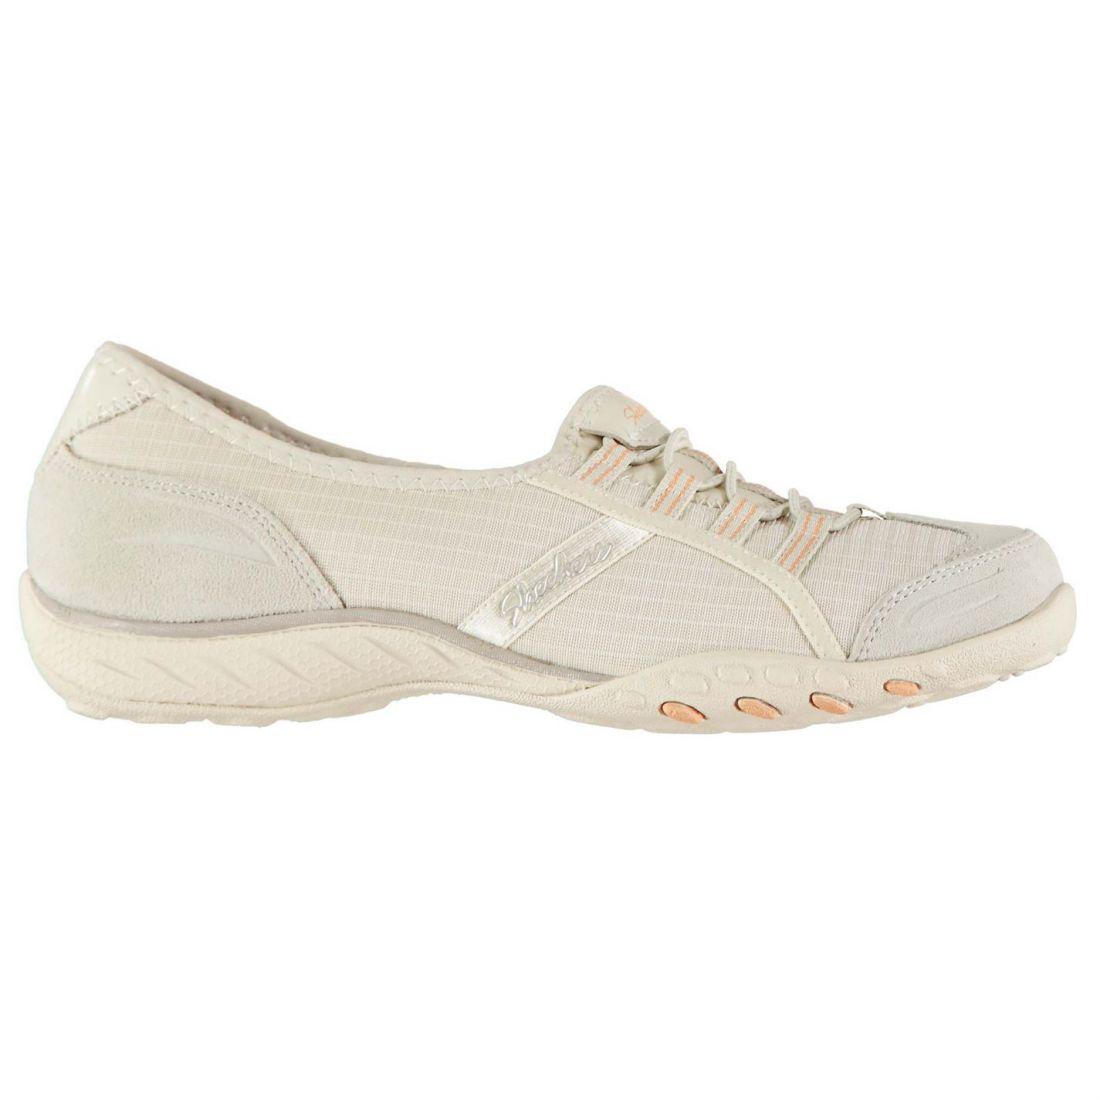 Details about Skechers Womens BE Allure Slip On Textile Memory Foam Casual  Everyday Shoes a41c39934e